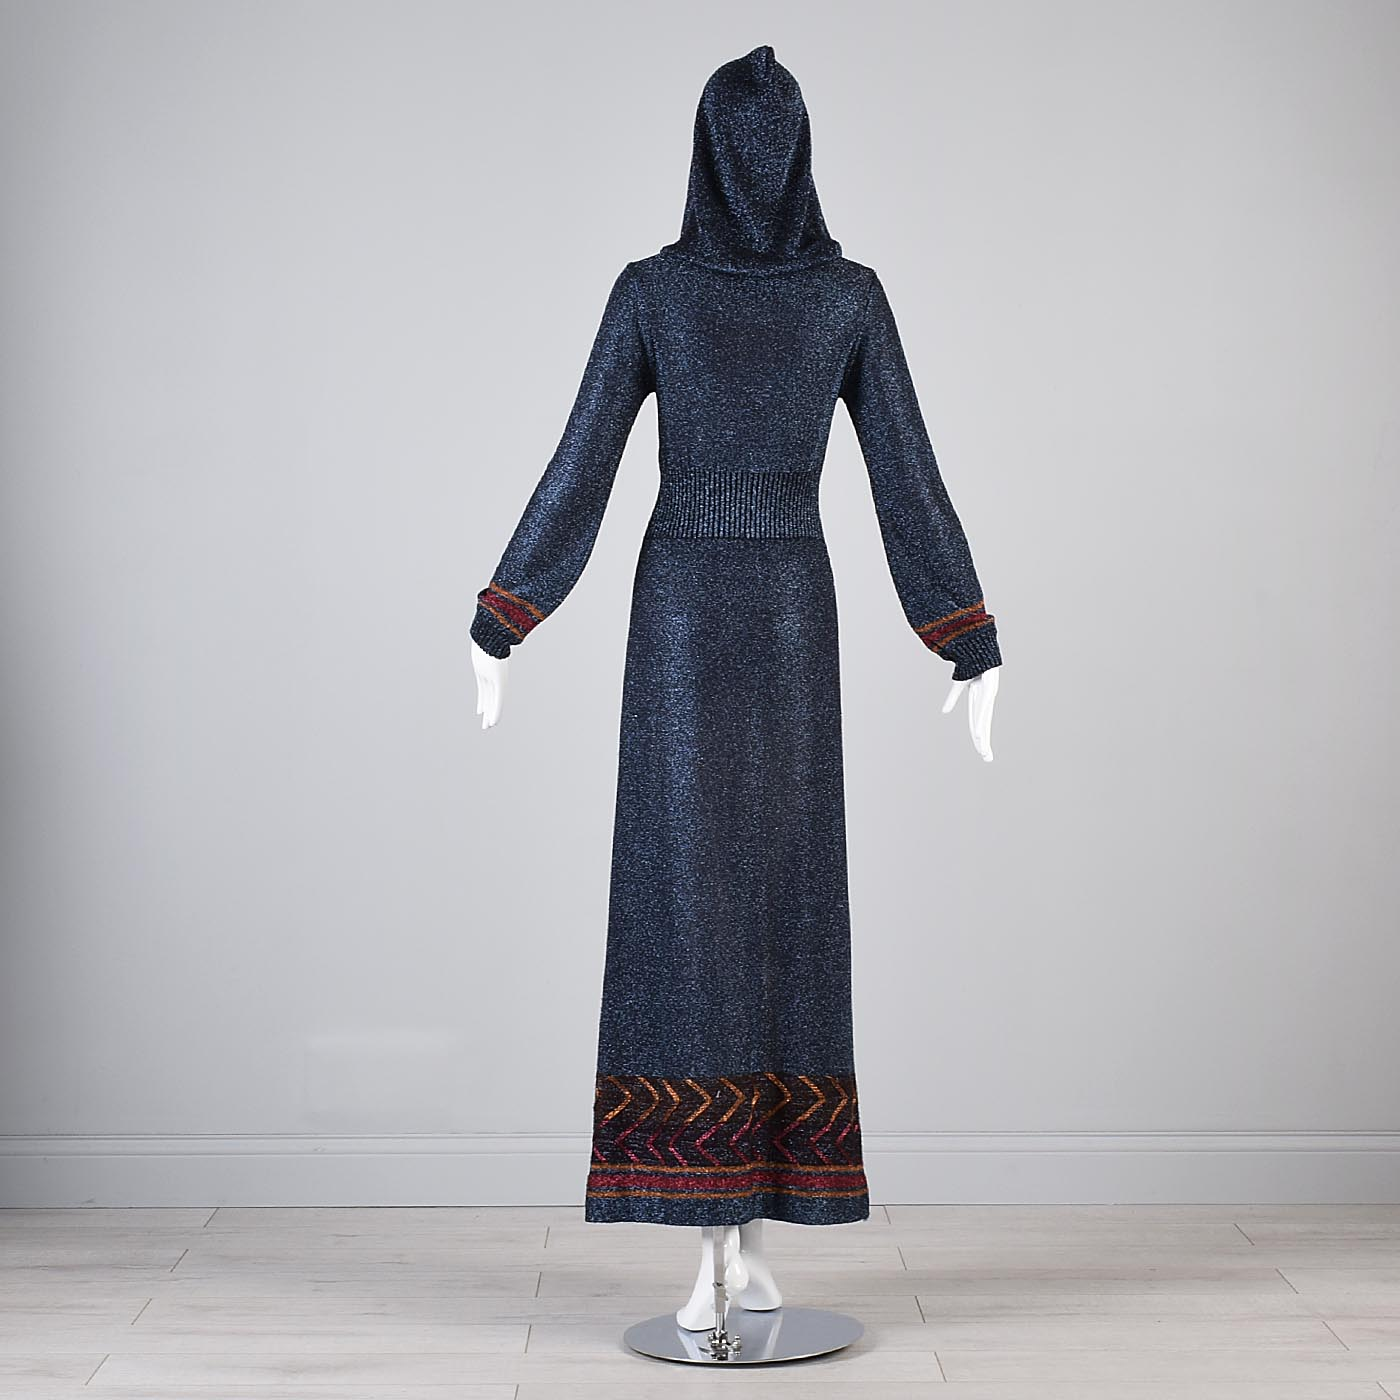 1970s Iconic Hooded Maxi Dress in Metallic Blue Knit